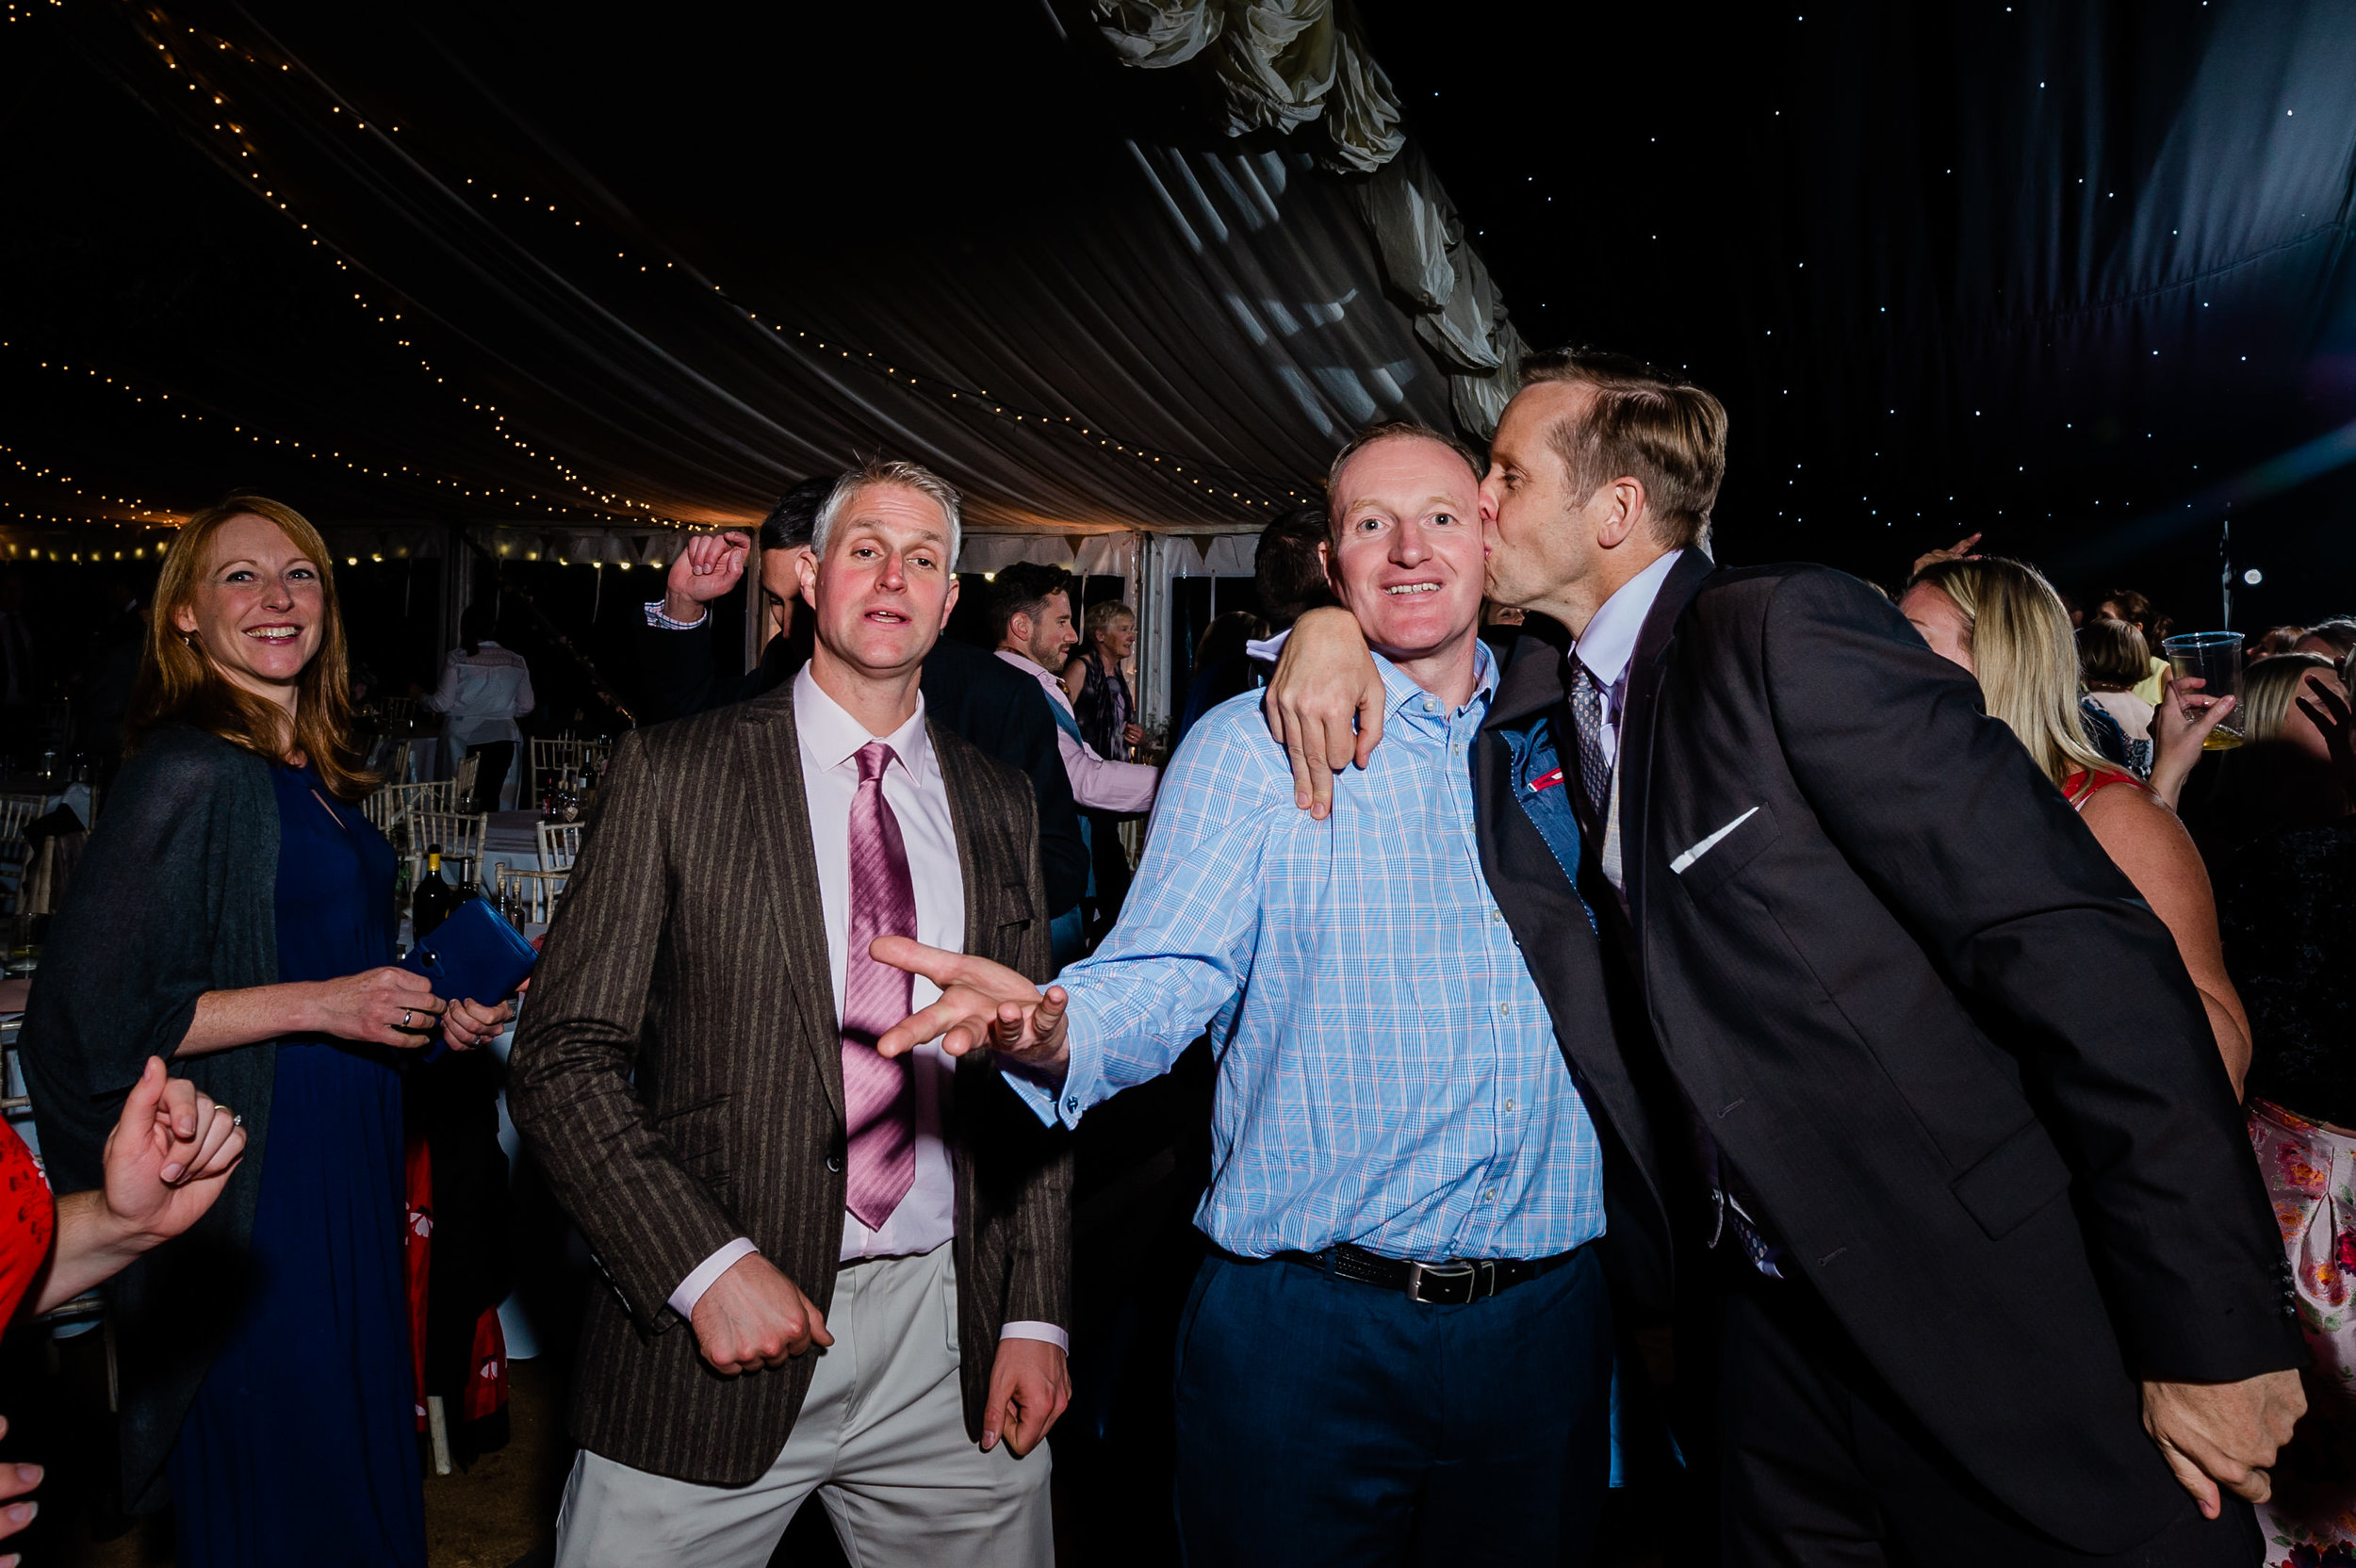 Salisbury wedding photography (239 of 250).jpg